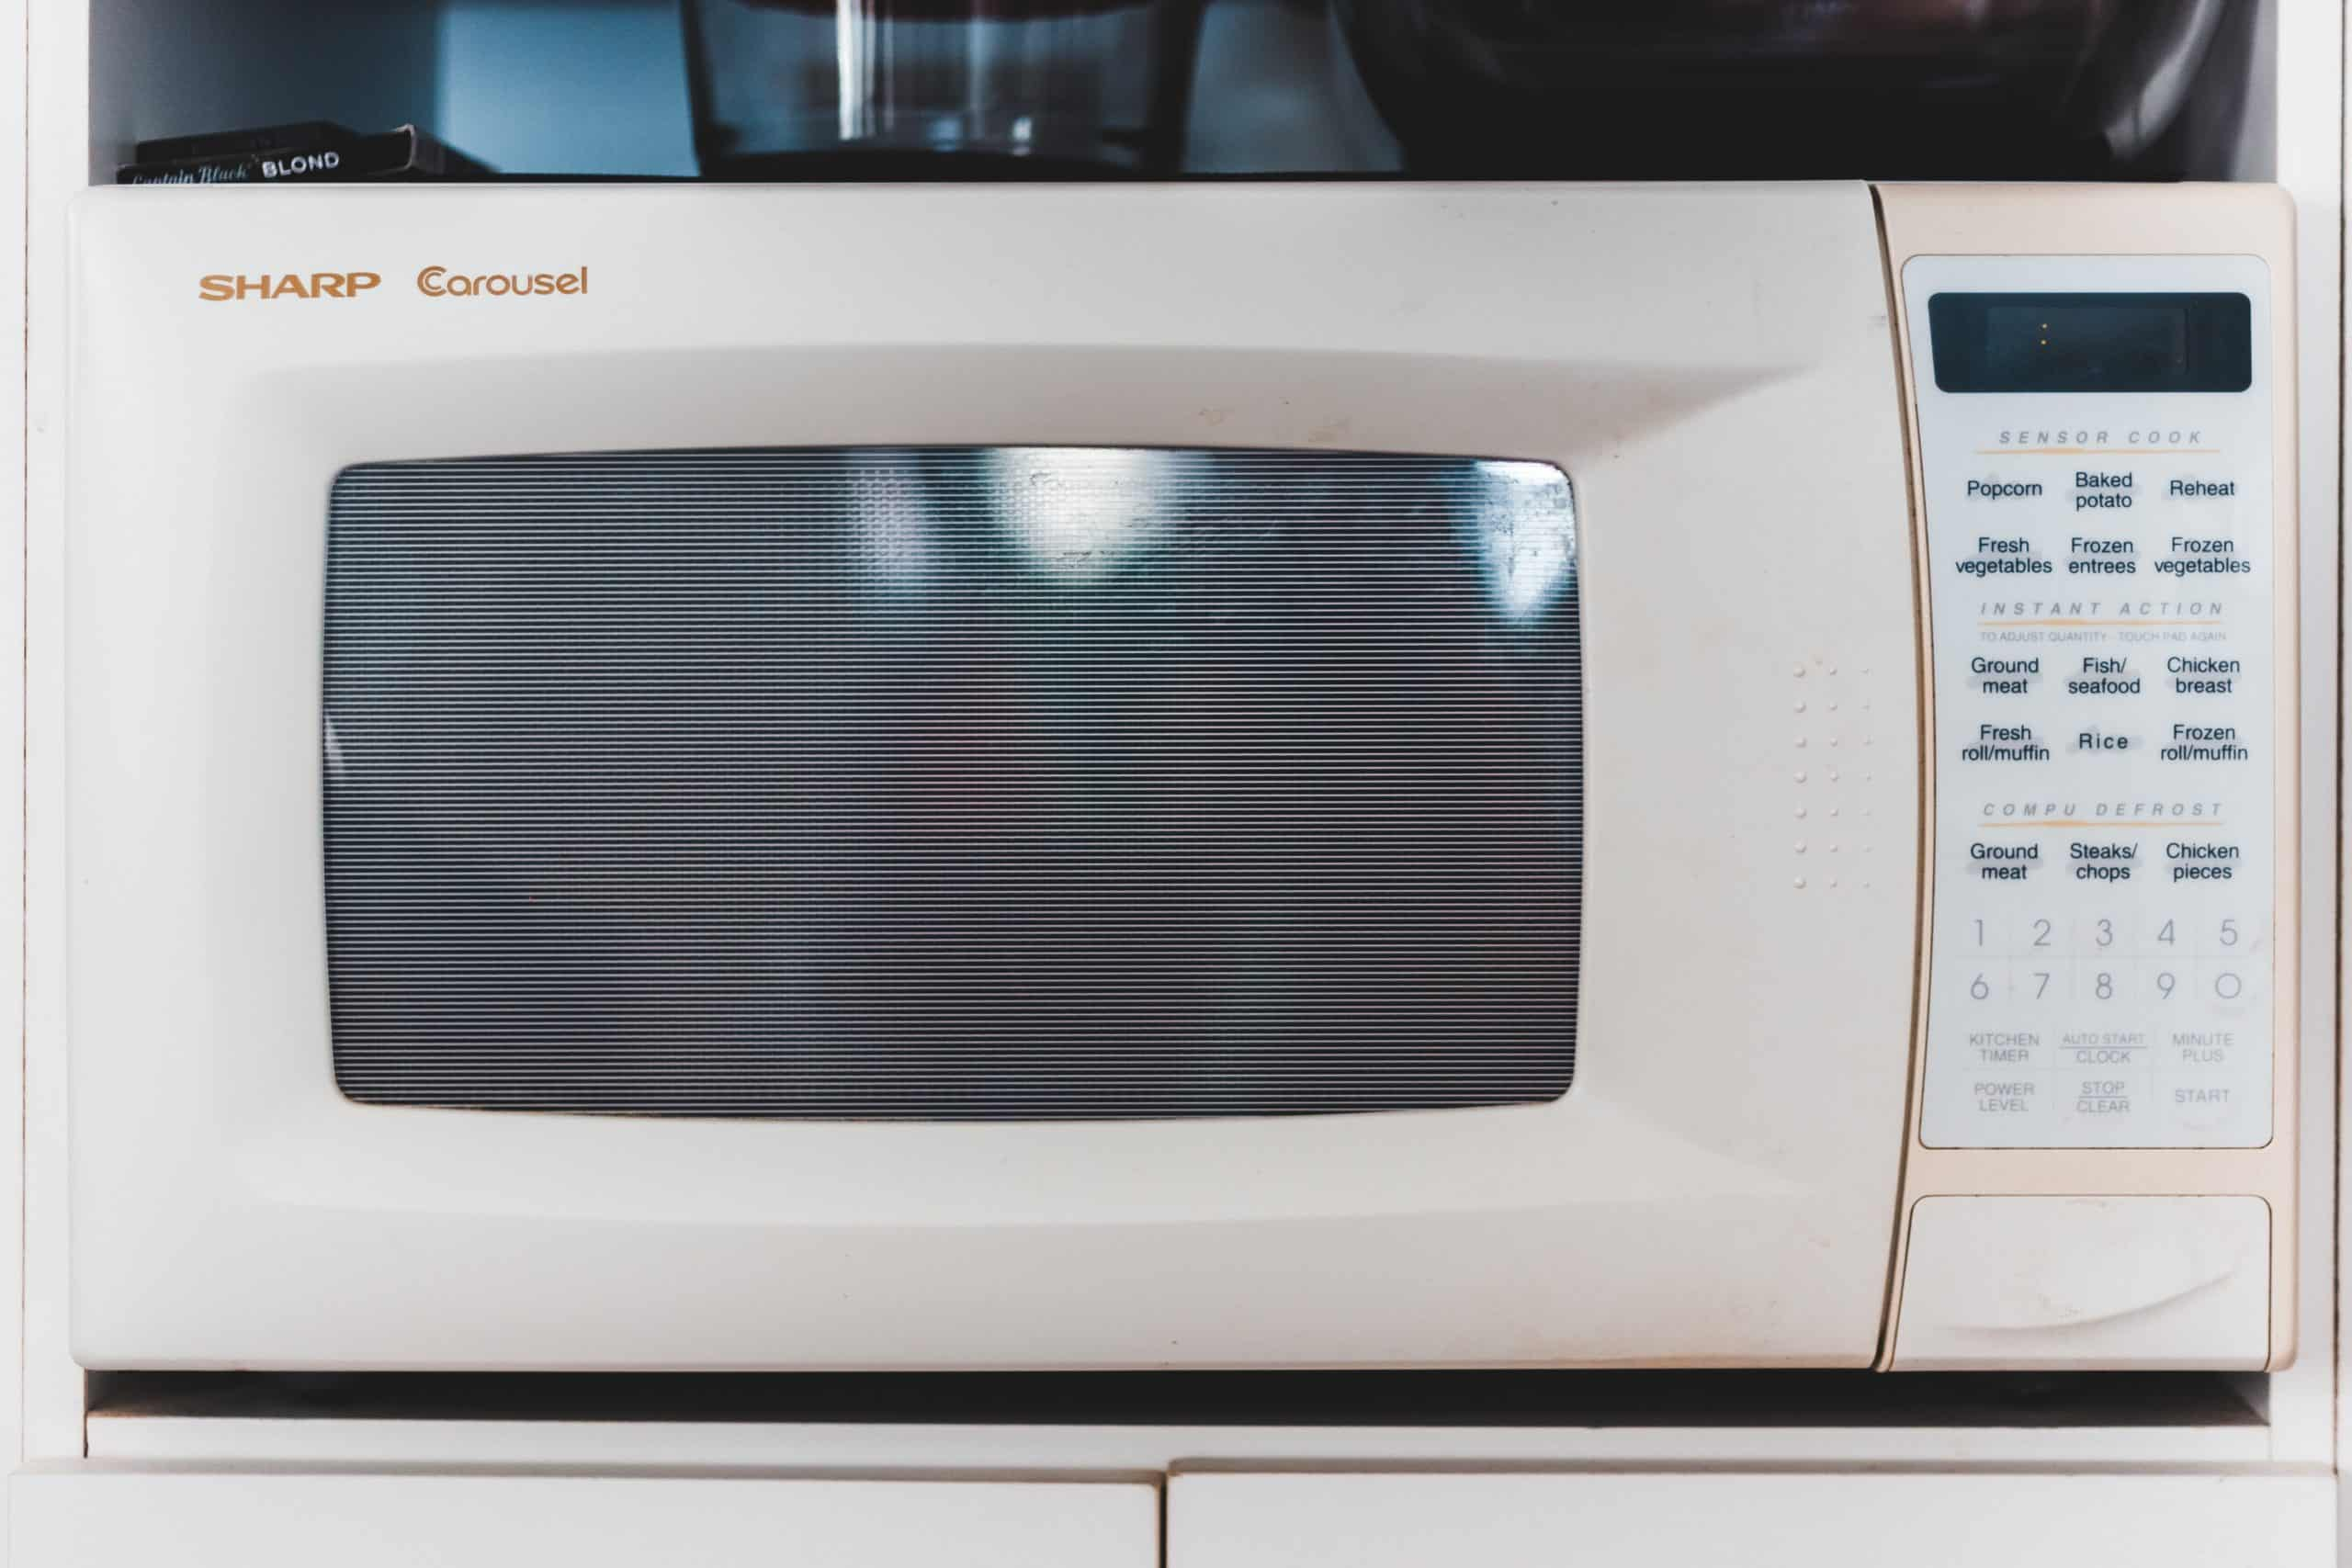 Real-Life Lessons About Microwave Oven